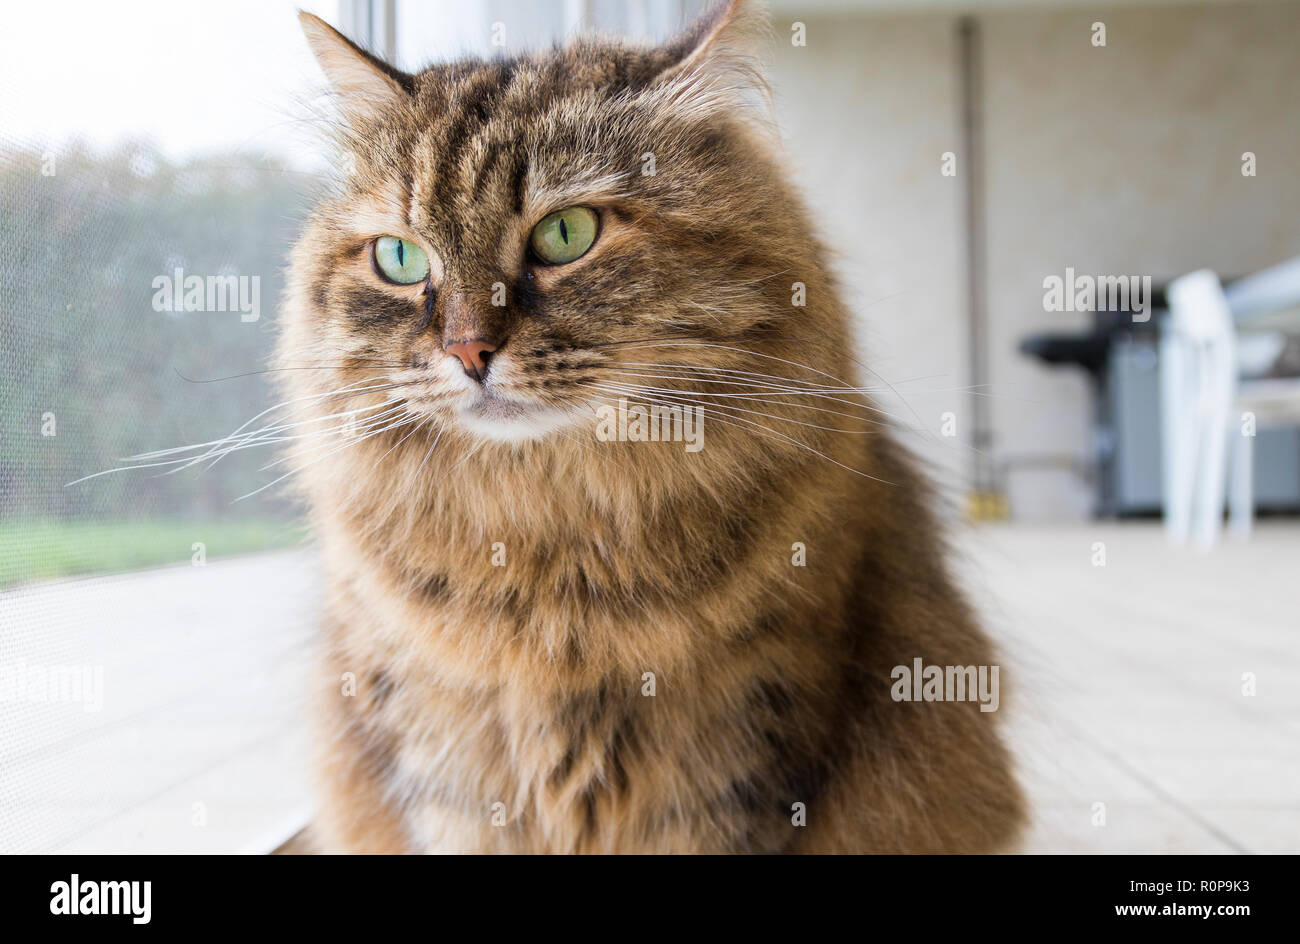 Curious livestock cat looking outdoor, funny pet - Stock Image